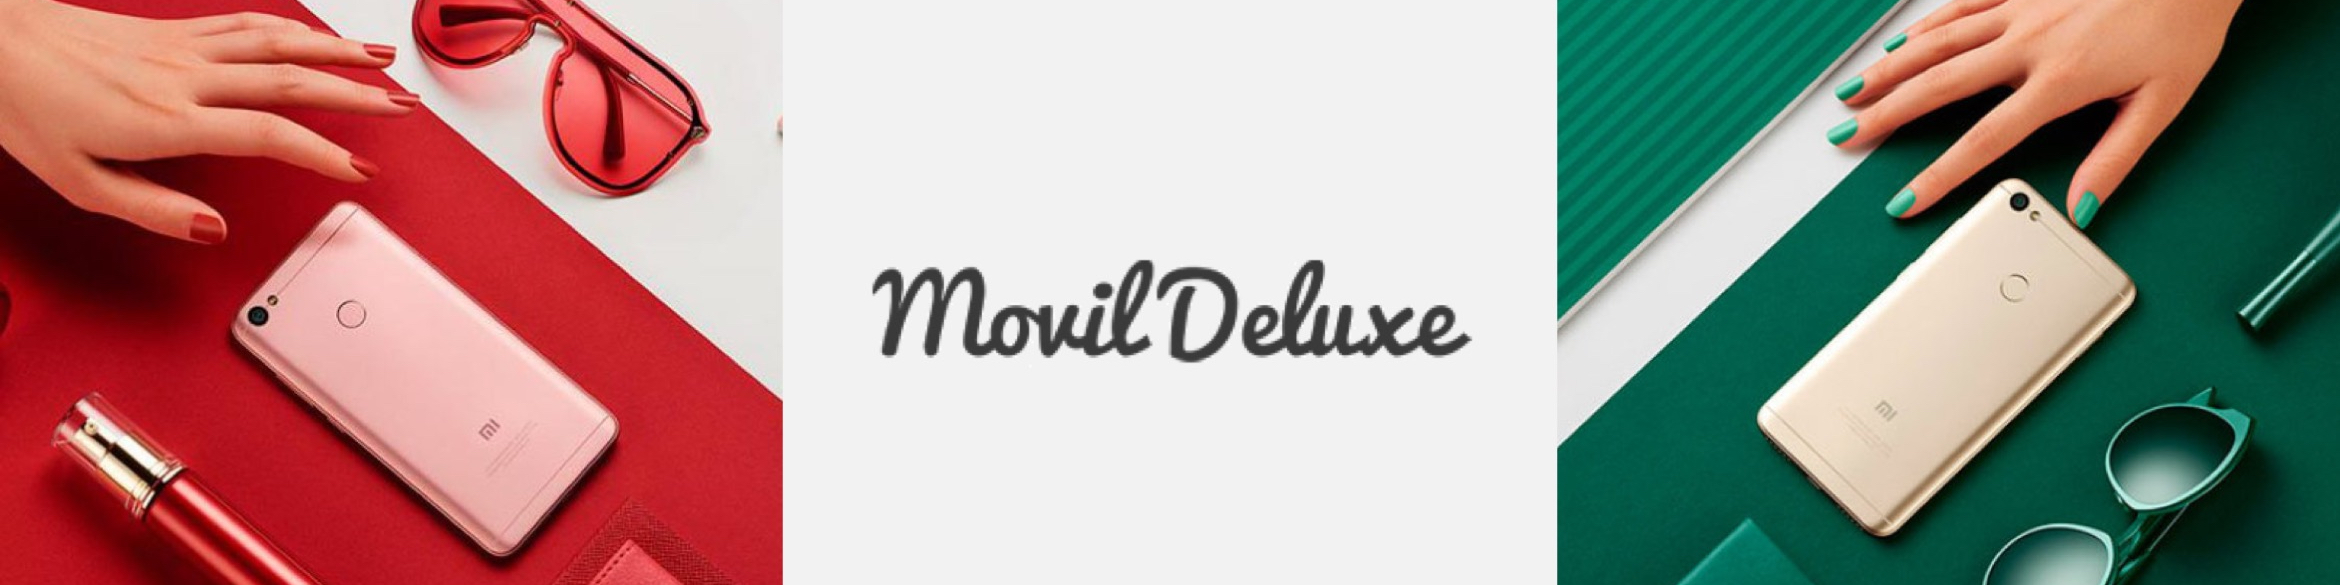 MovilDeluxe